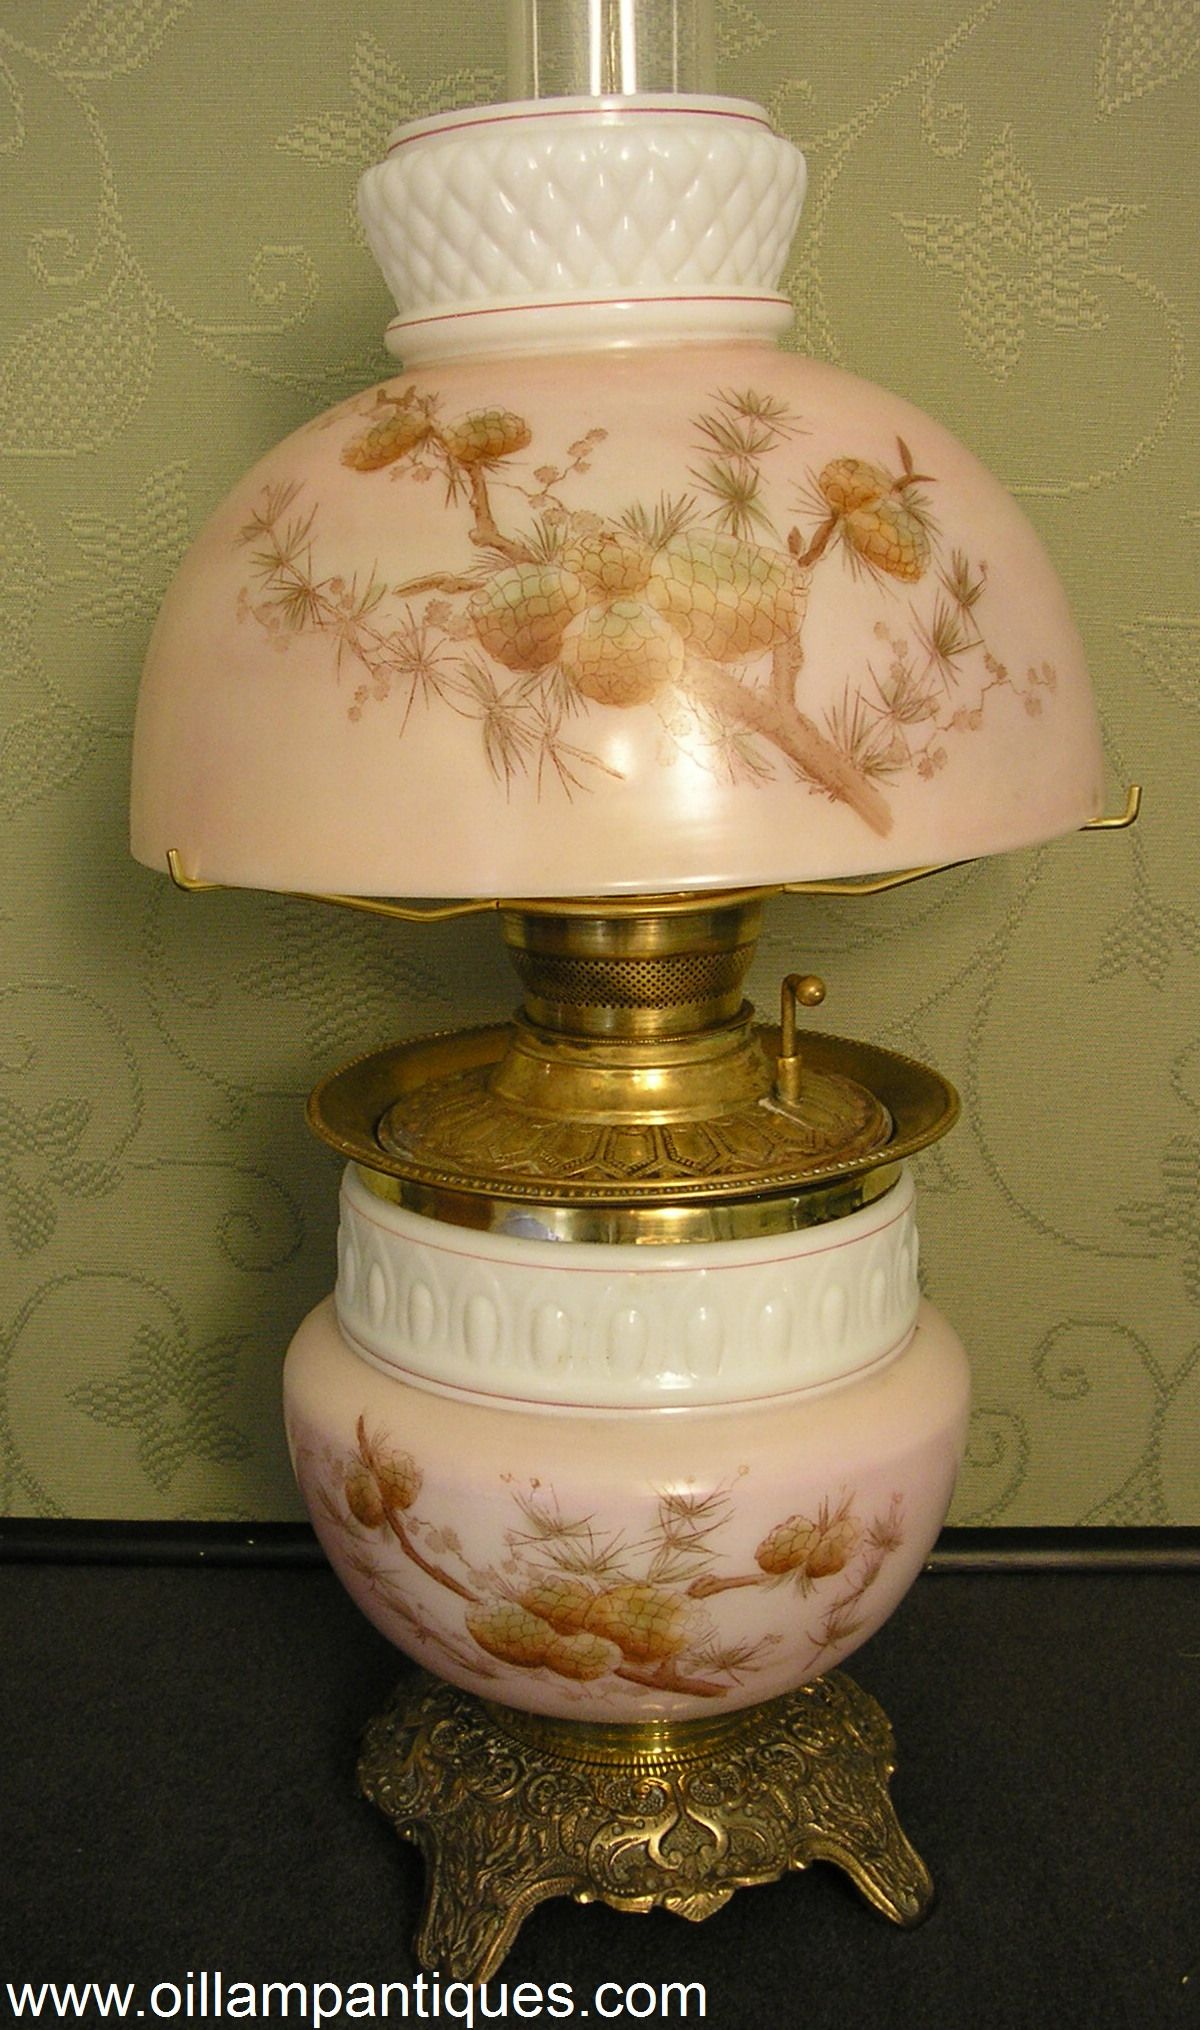 Stencil And Hand Painted Matching Antique Half Shade Parlor Lamp Circa 1895 Oil Lamps Lamp Antique Lamps